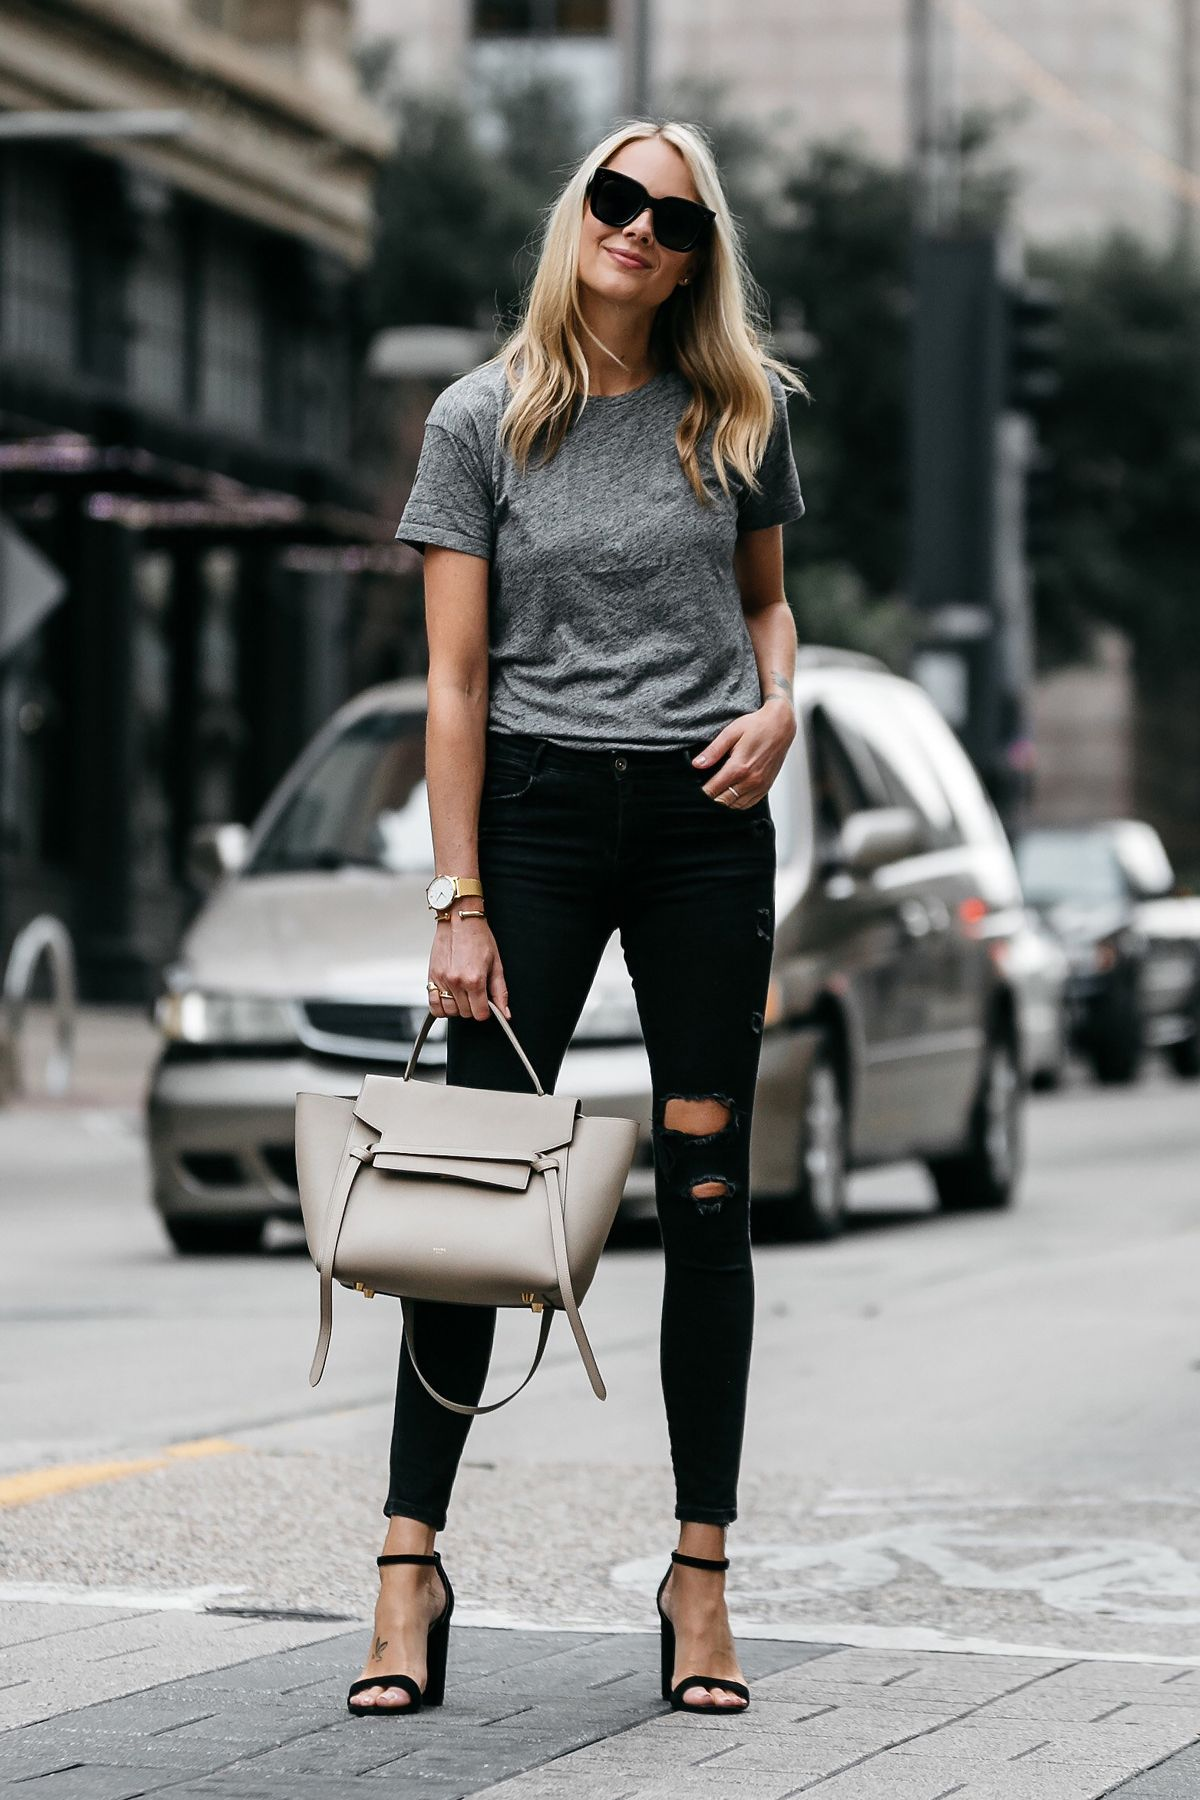 b7701c48d5 Blonde woman wearing Madewell grey tshirt zara black ripped skinny jeans  outfit steve madden black ankle strap heels celine belt bag street style  dallas ...